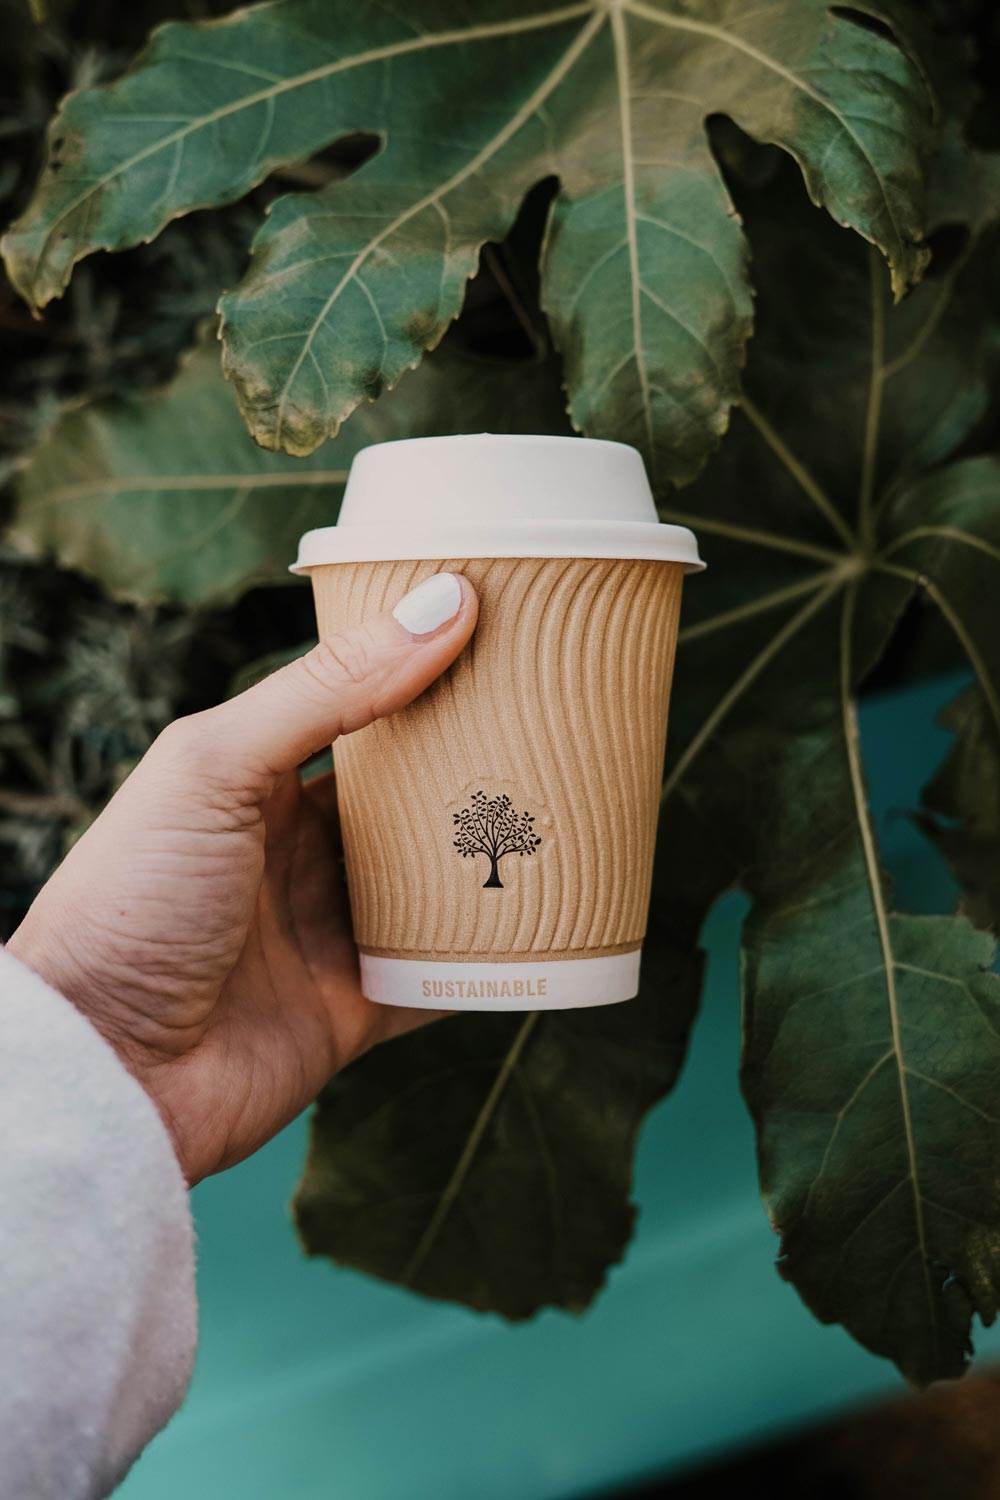 """Photo of a hand holding a paper cup that says the word """"Sustainable"""" on it."""